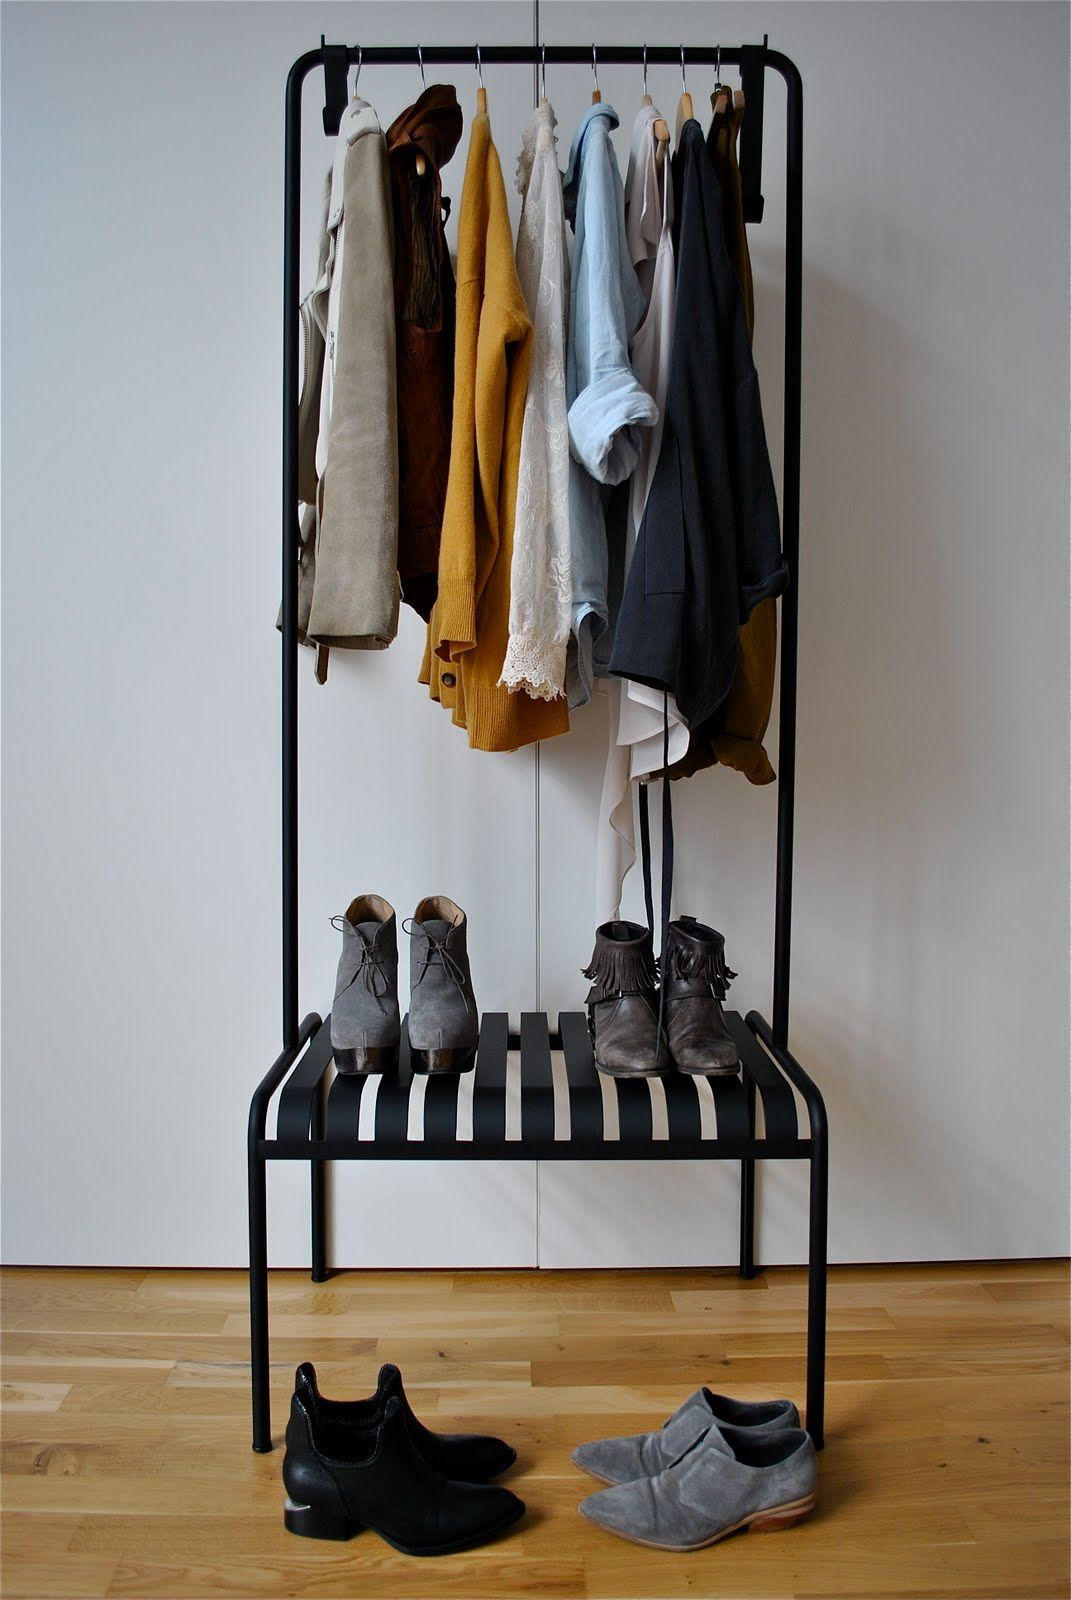 If I Have A Single This Could Be A Cool Idea To Display A Few Pairs